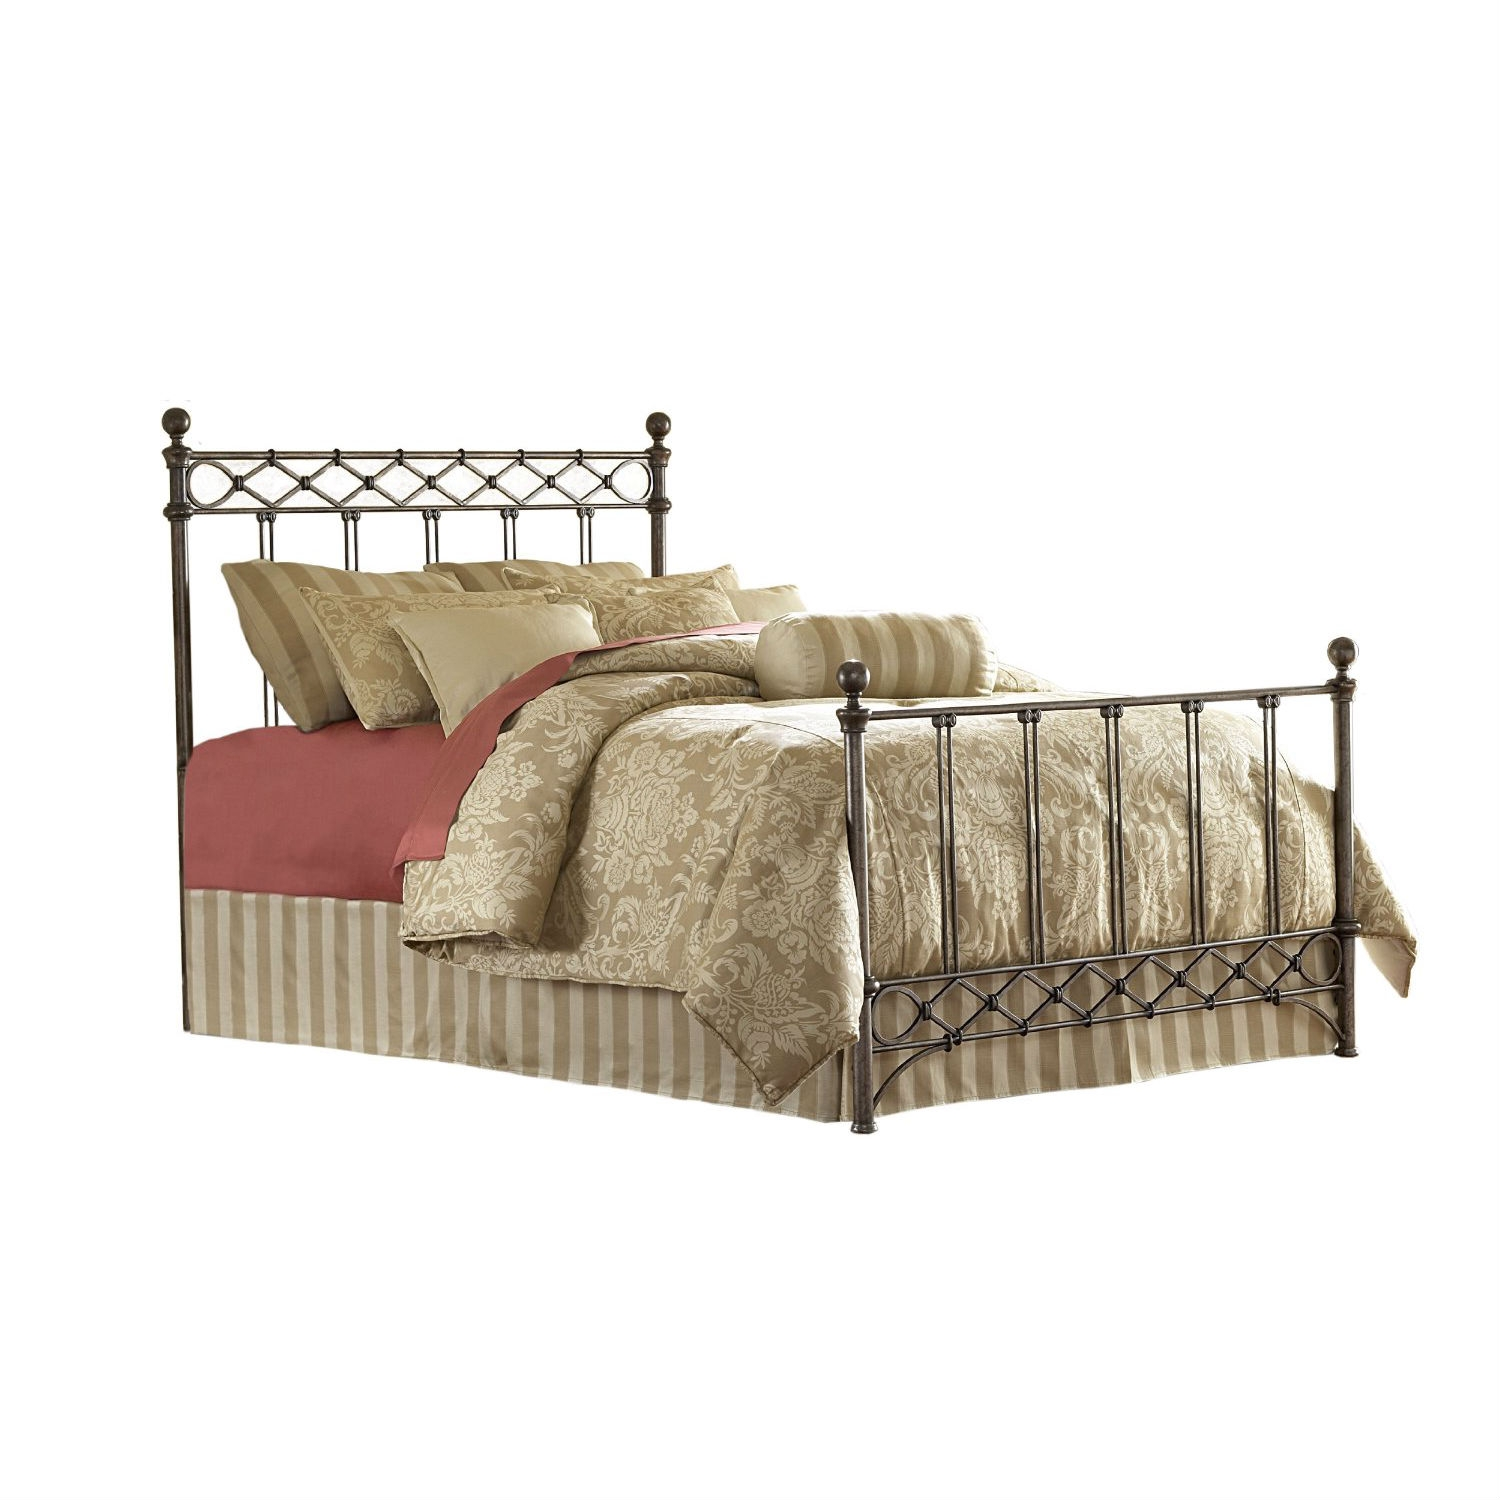 King size Metal Bed with Headboard and Footboard in Copper Chrome Finish,  AMB459:  This King size Metal Bed with Headboard and Footboard in Copper Chrome Finish is named for the diamond pattern wire design casted below the top rail of the headboard and just above the bottom rail of the footboard. The grills are composed of five sets of double spindles also casted together. There is a curved piece of metal tube added to the bottom of the footboard which gives a bit of additional flair to the design. The finish is called Copper Chrome and is a mixture of copper and silver streaked with black antiquing - which will allow the bed to coordinate with many types of wood accessory pieces.